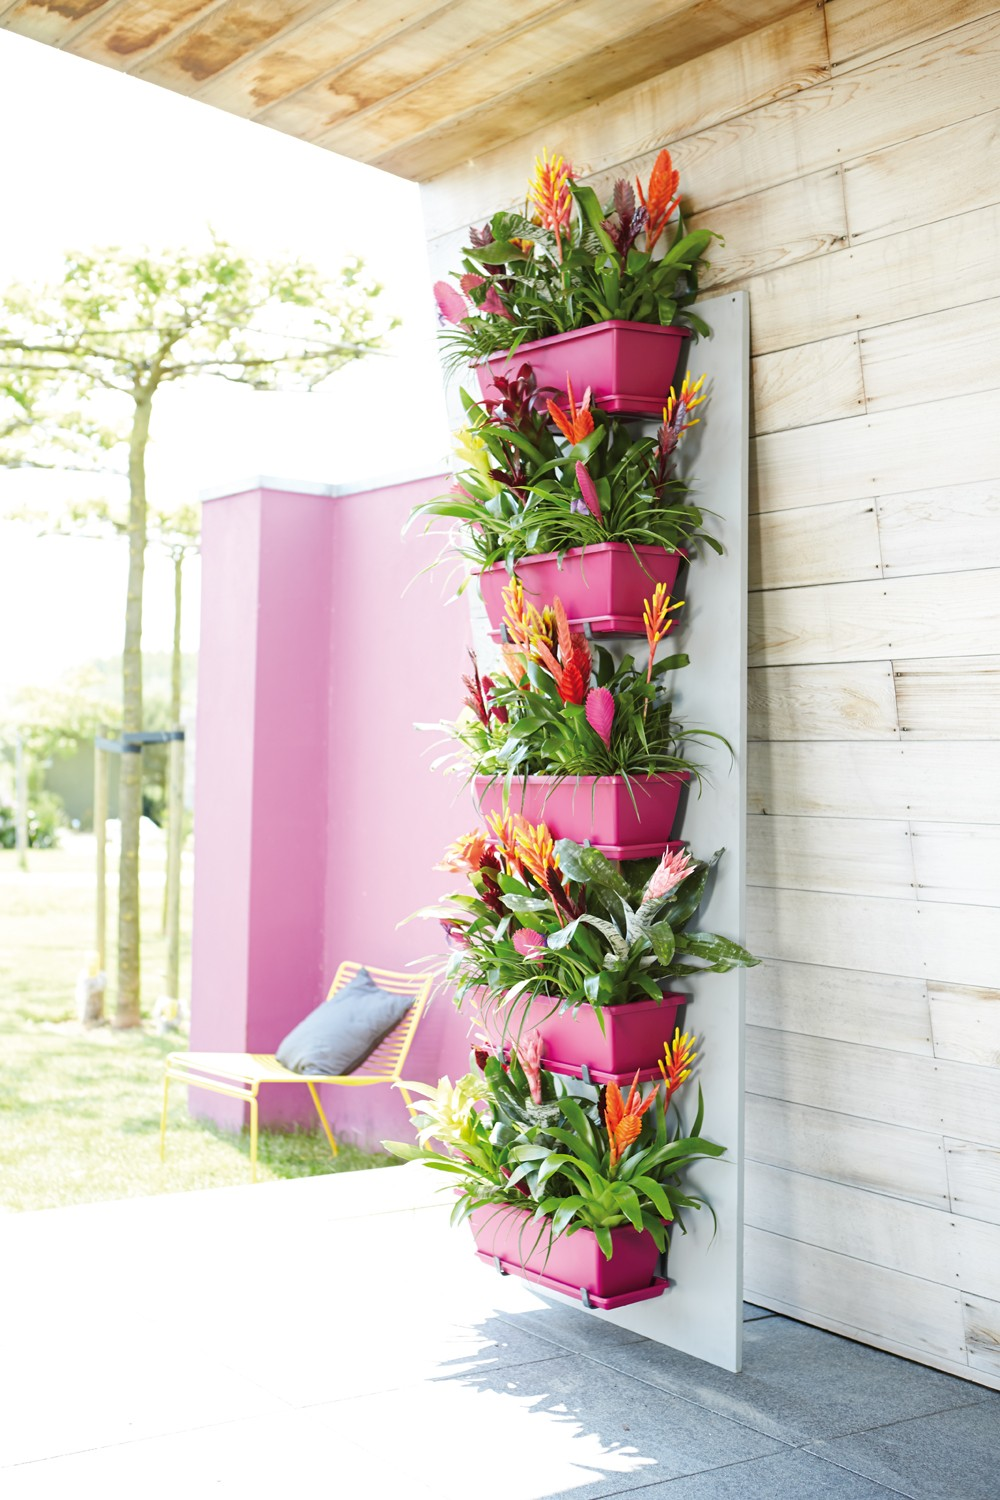 3 bright pink adds a pop of color and accents vibrant bromeliads